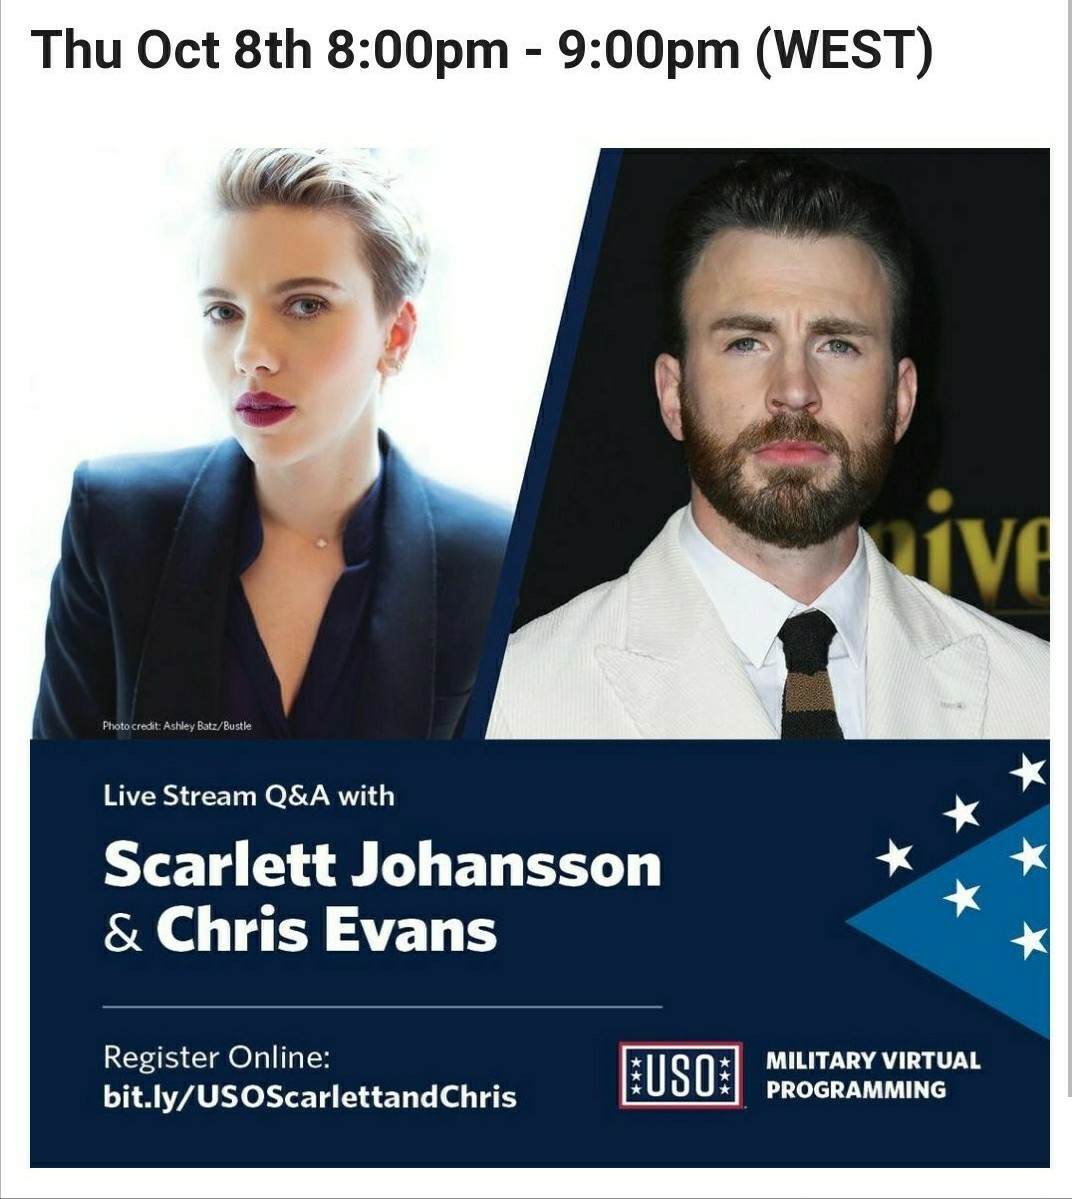 Livestream Q&A with Chris Evans & Scarlett Johansson on October 8.  [All USO MVP events are for Department of Defense ID holders and their dependents.] https://t.co/6K2Fqfe2RB